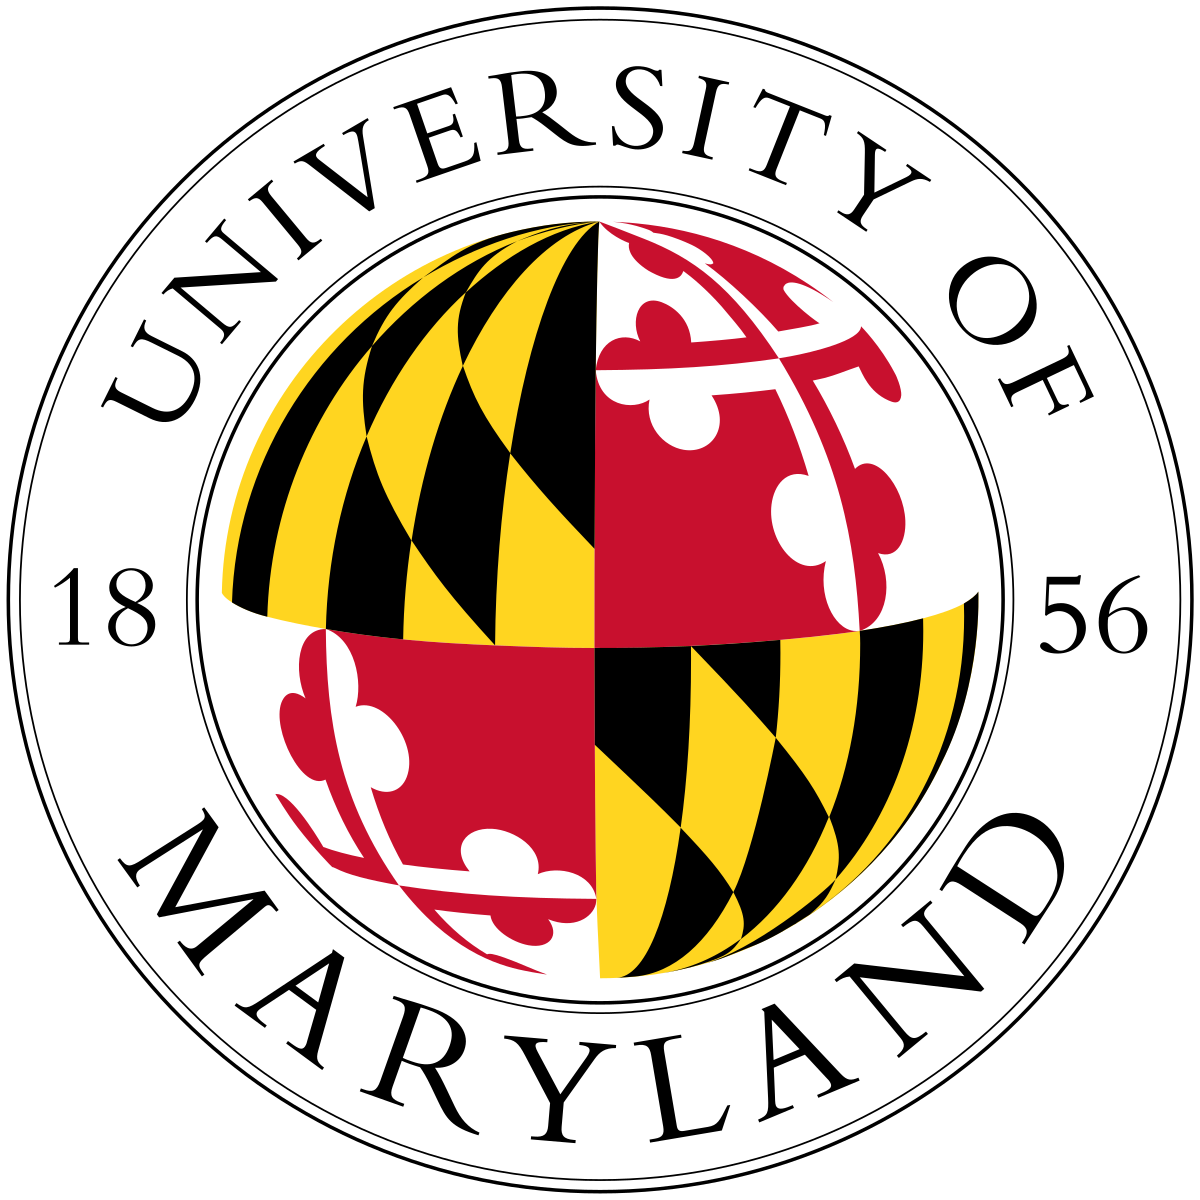 University of Maryland client